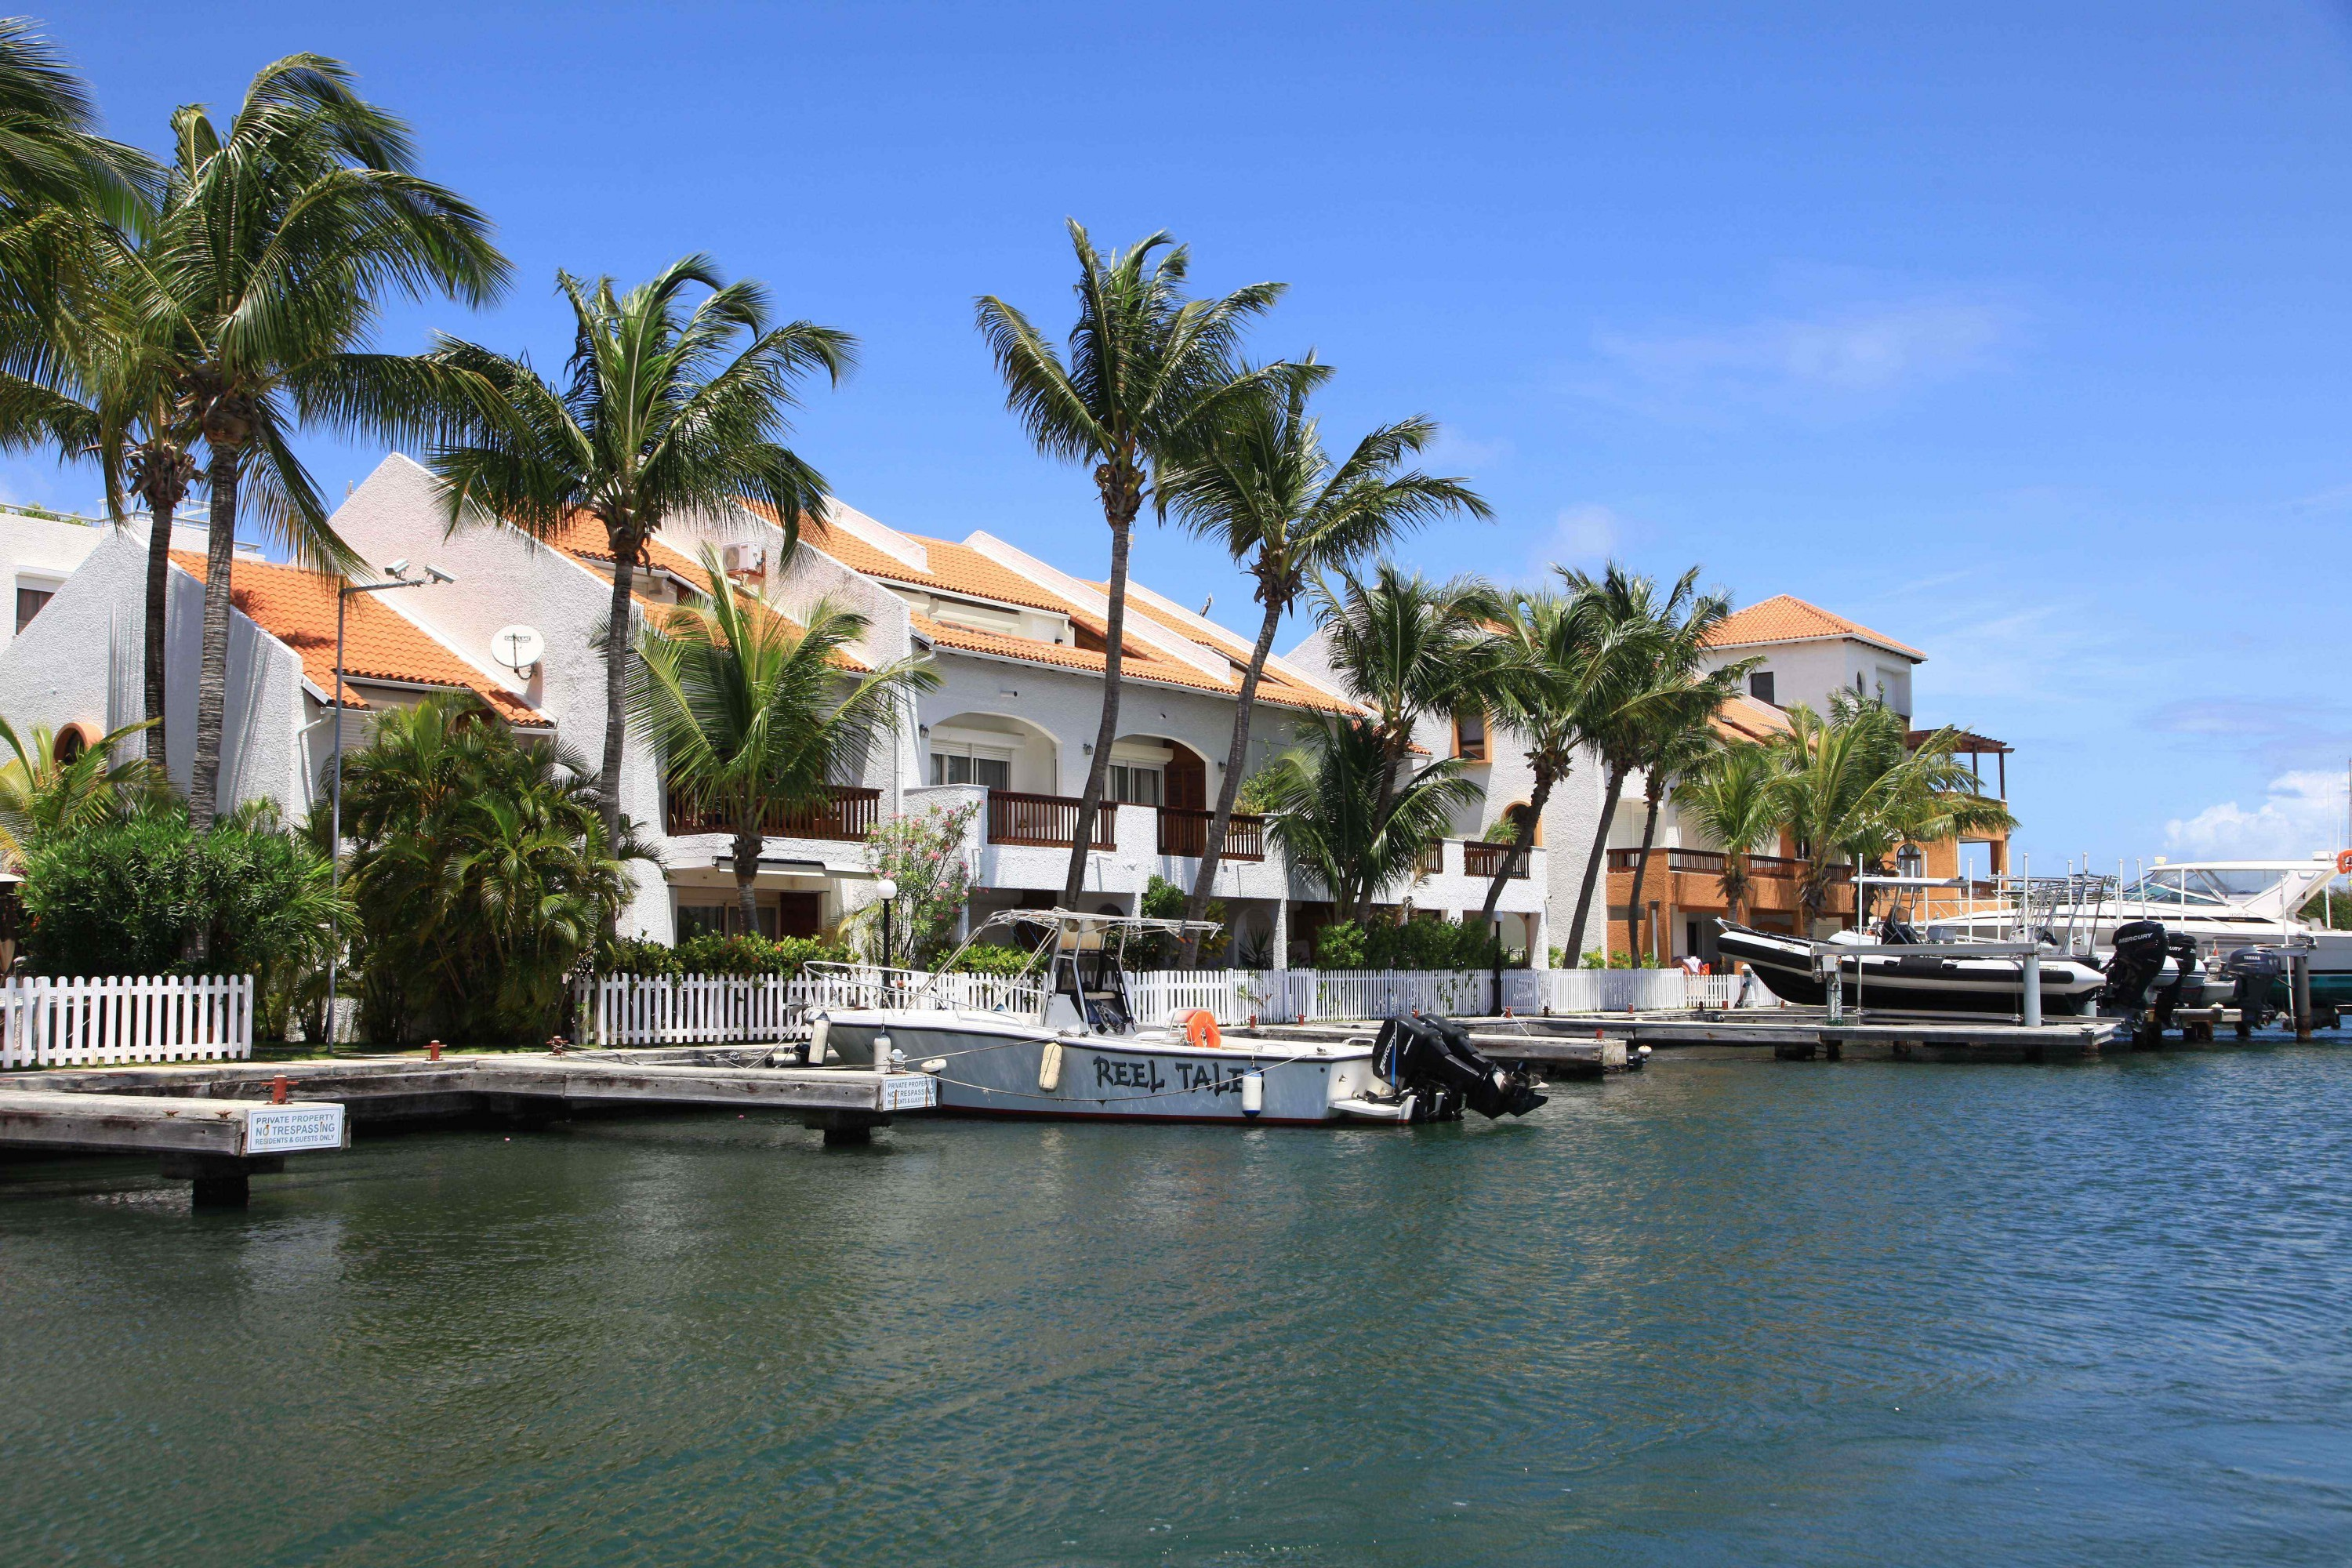 Simpson Bay Yacht Club  - d78fc-IMG_6831.jpg